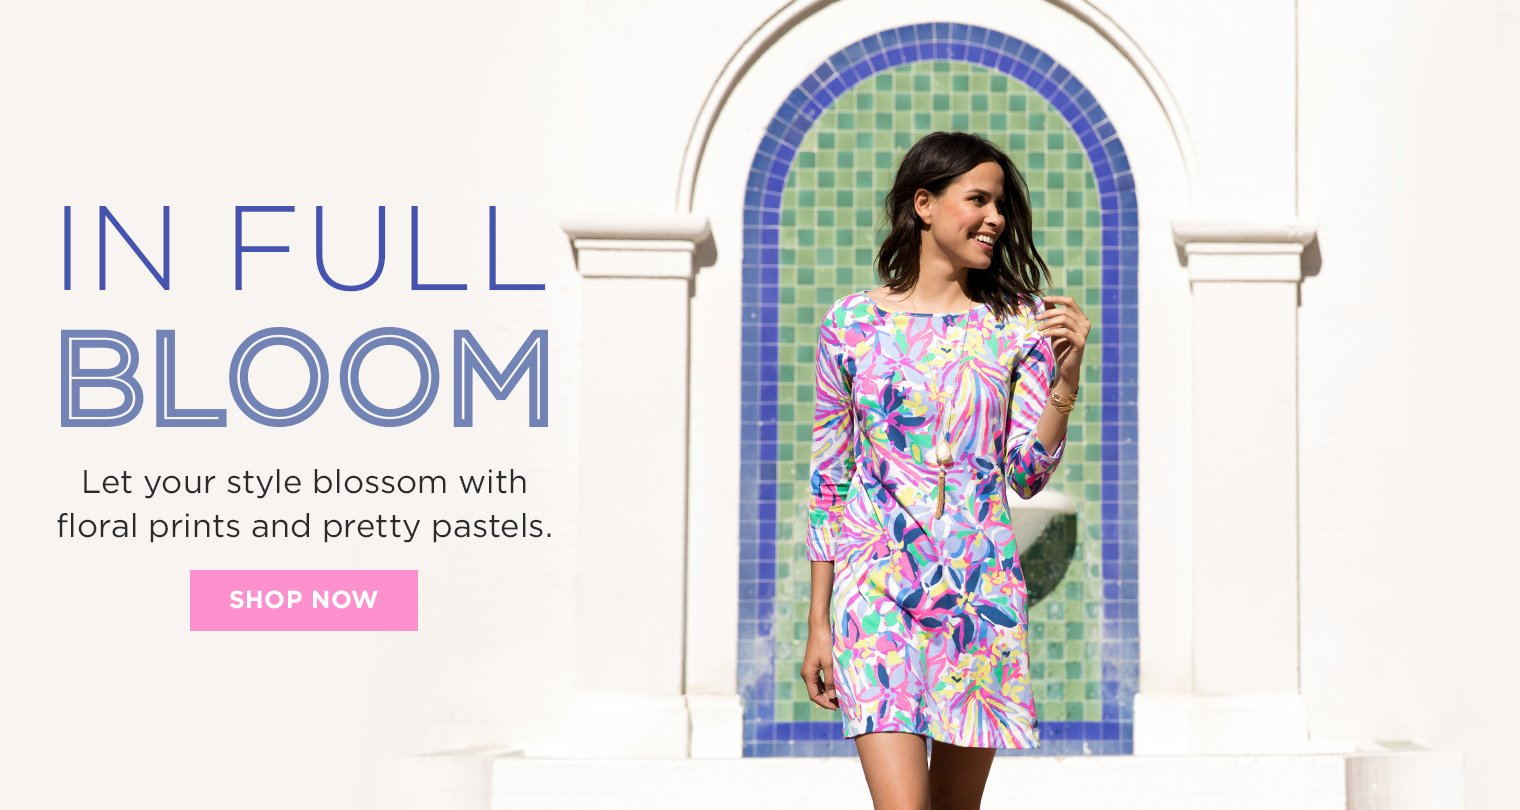 In Full Bloom. Let your style blossom with floral prints and pretty pastels. Shop now.